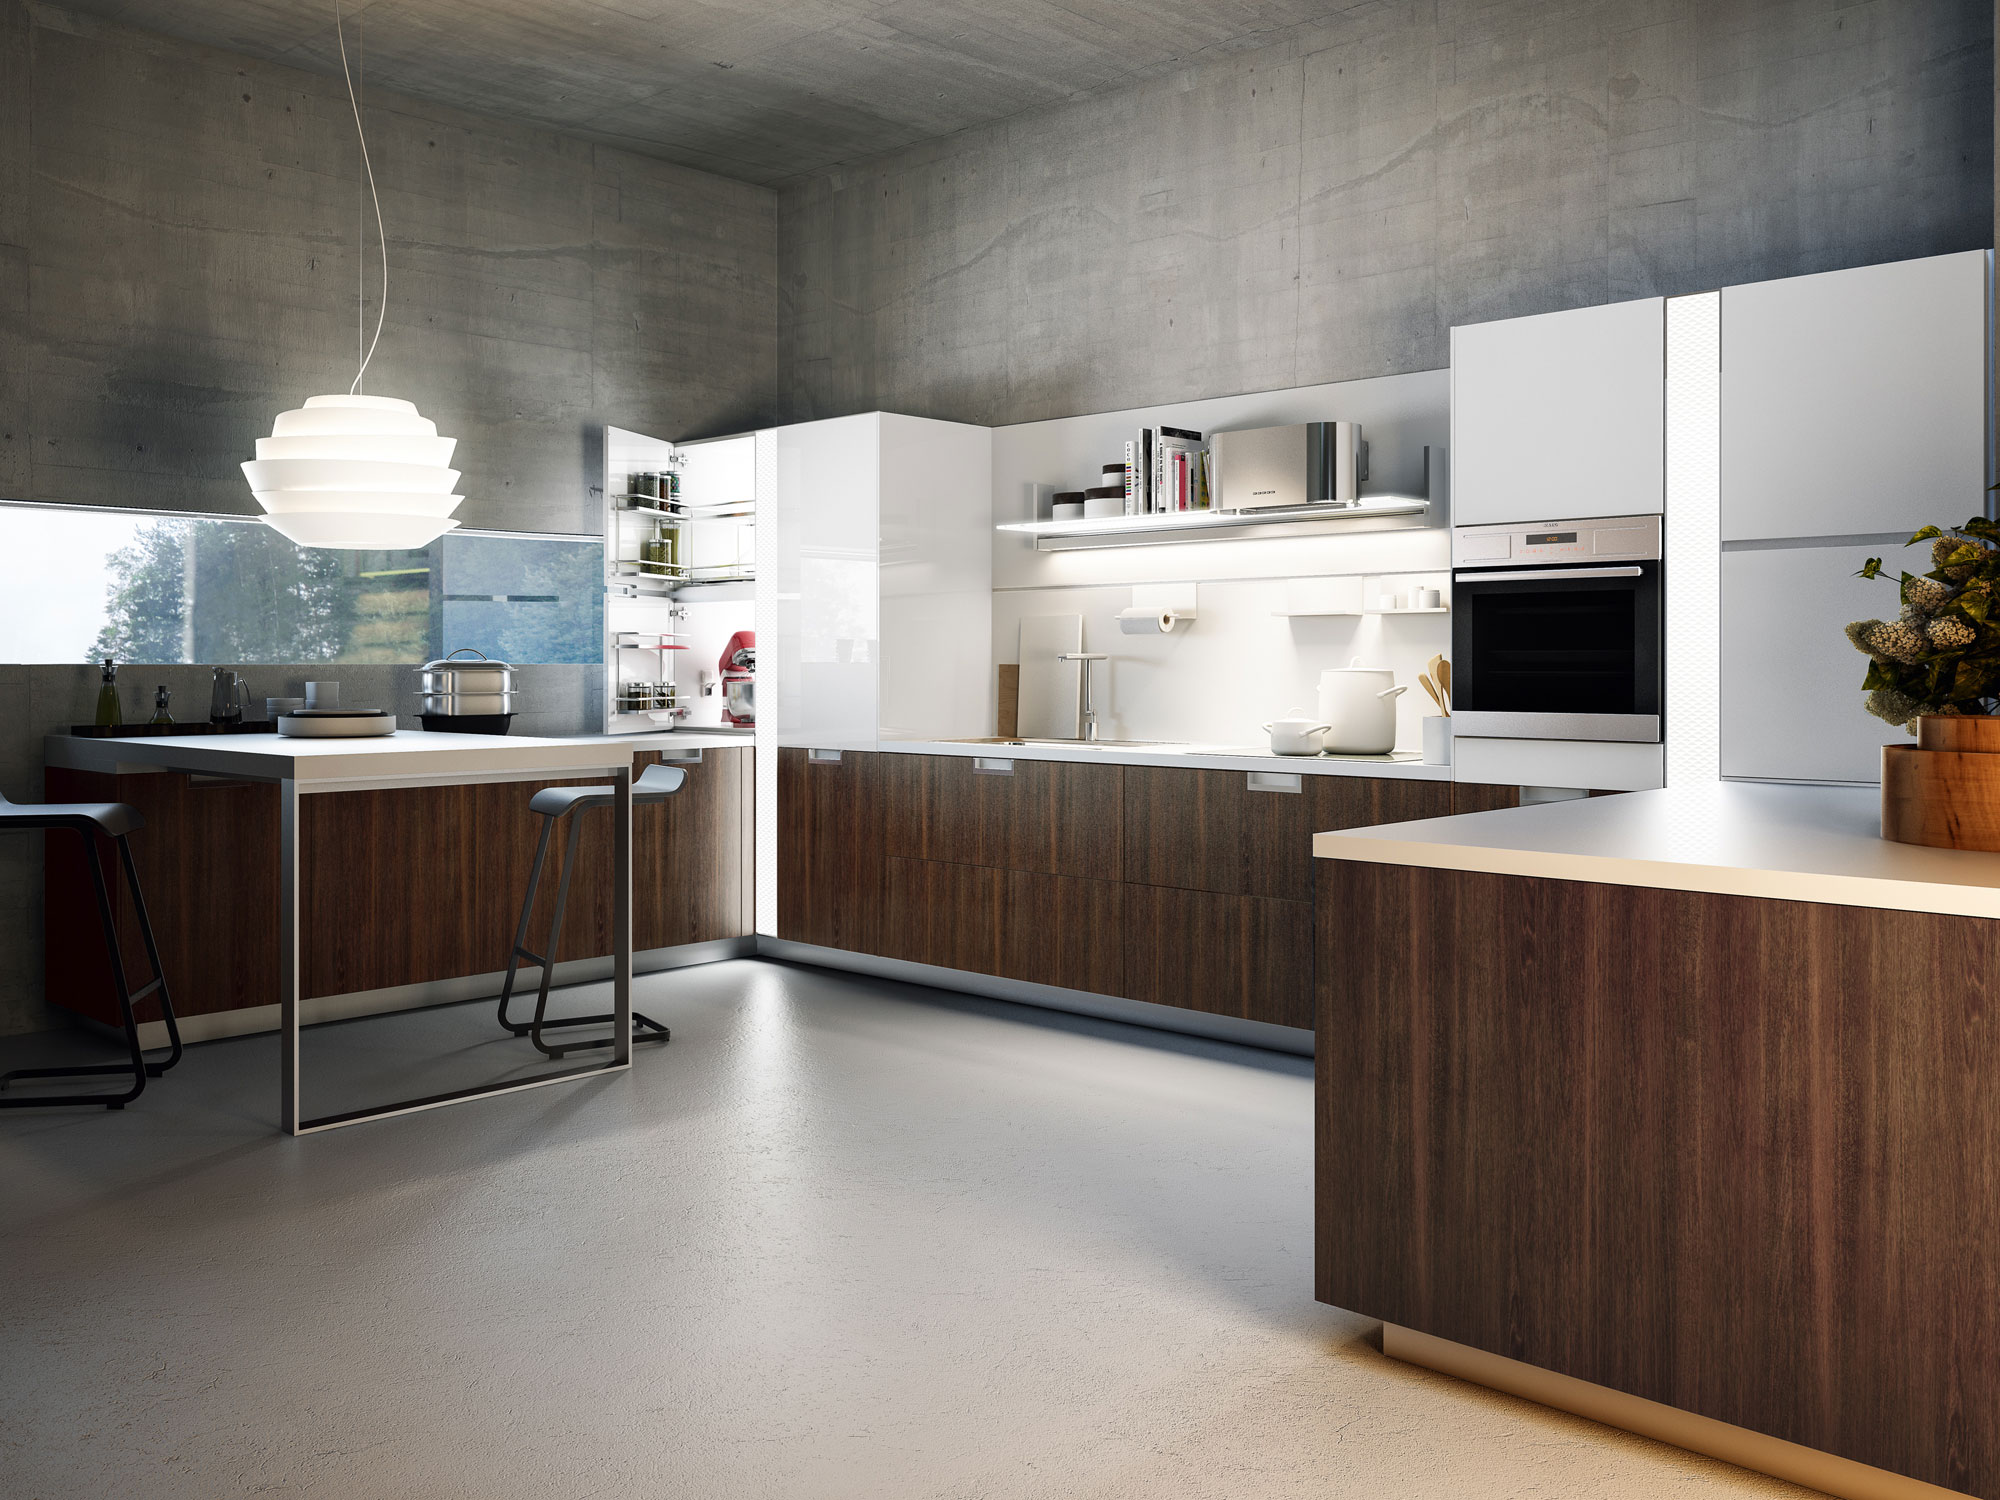 Lux embodies transitional style snaidero for Snaidero cucine moderne